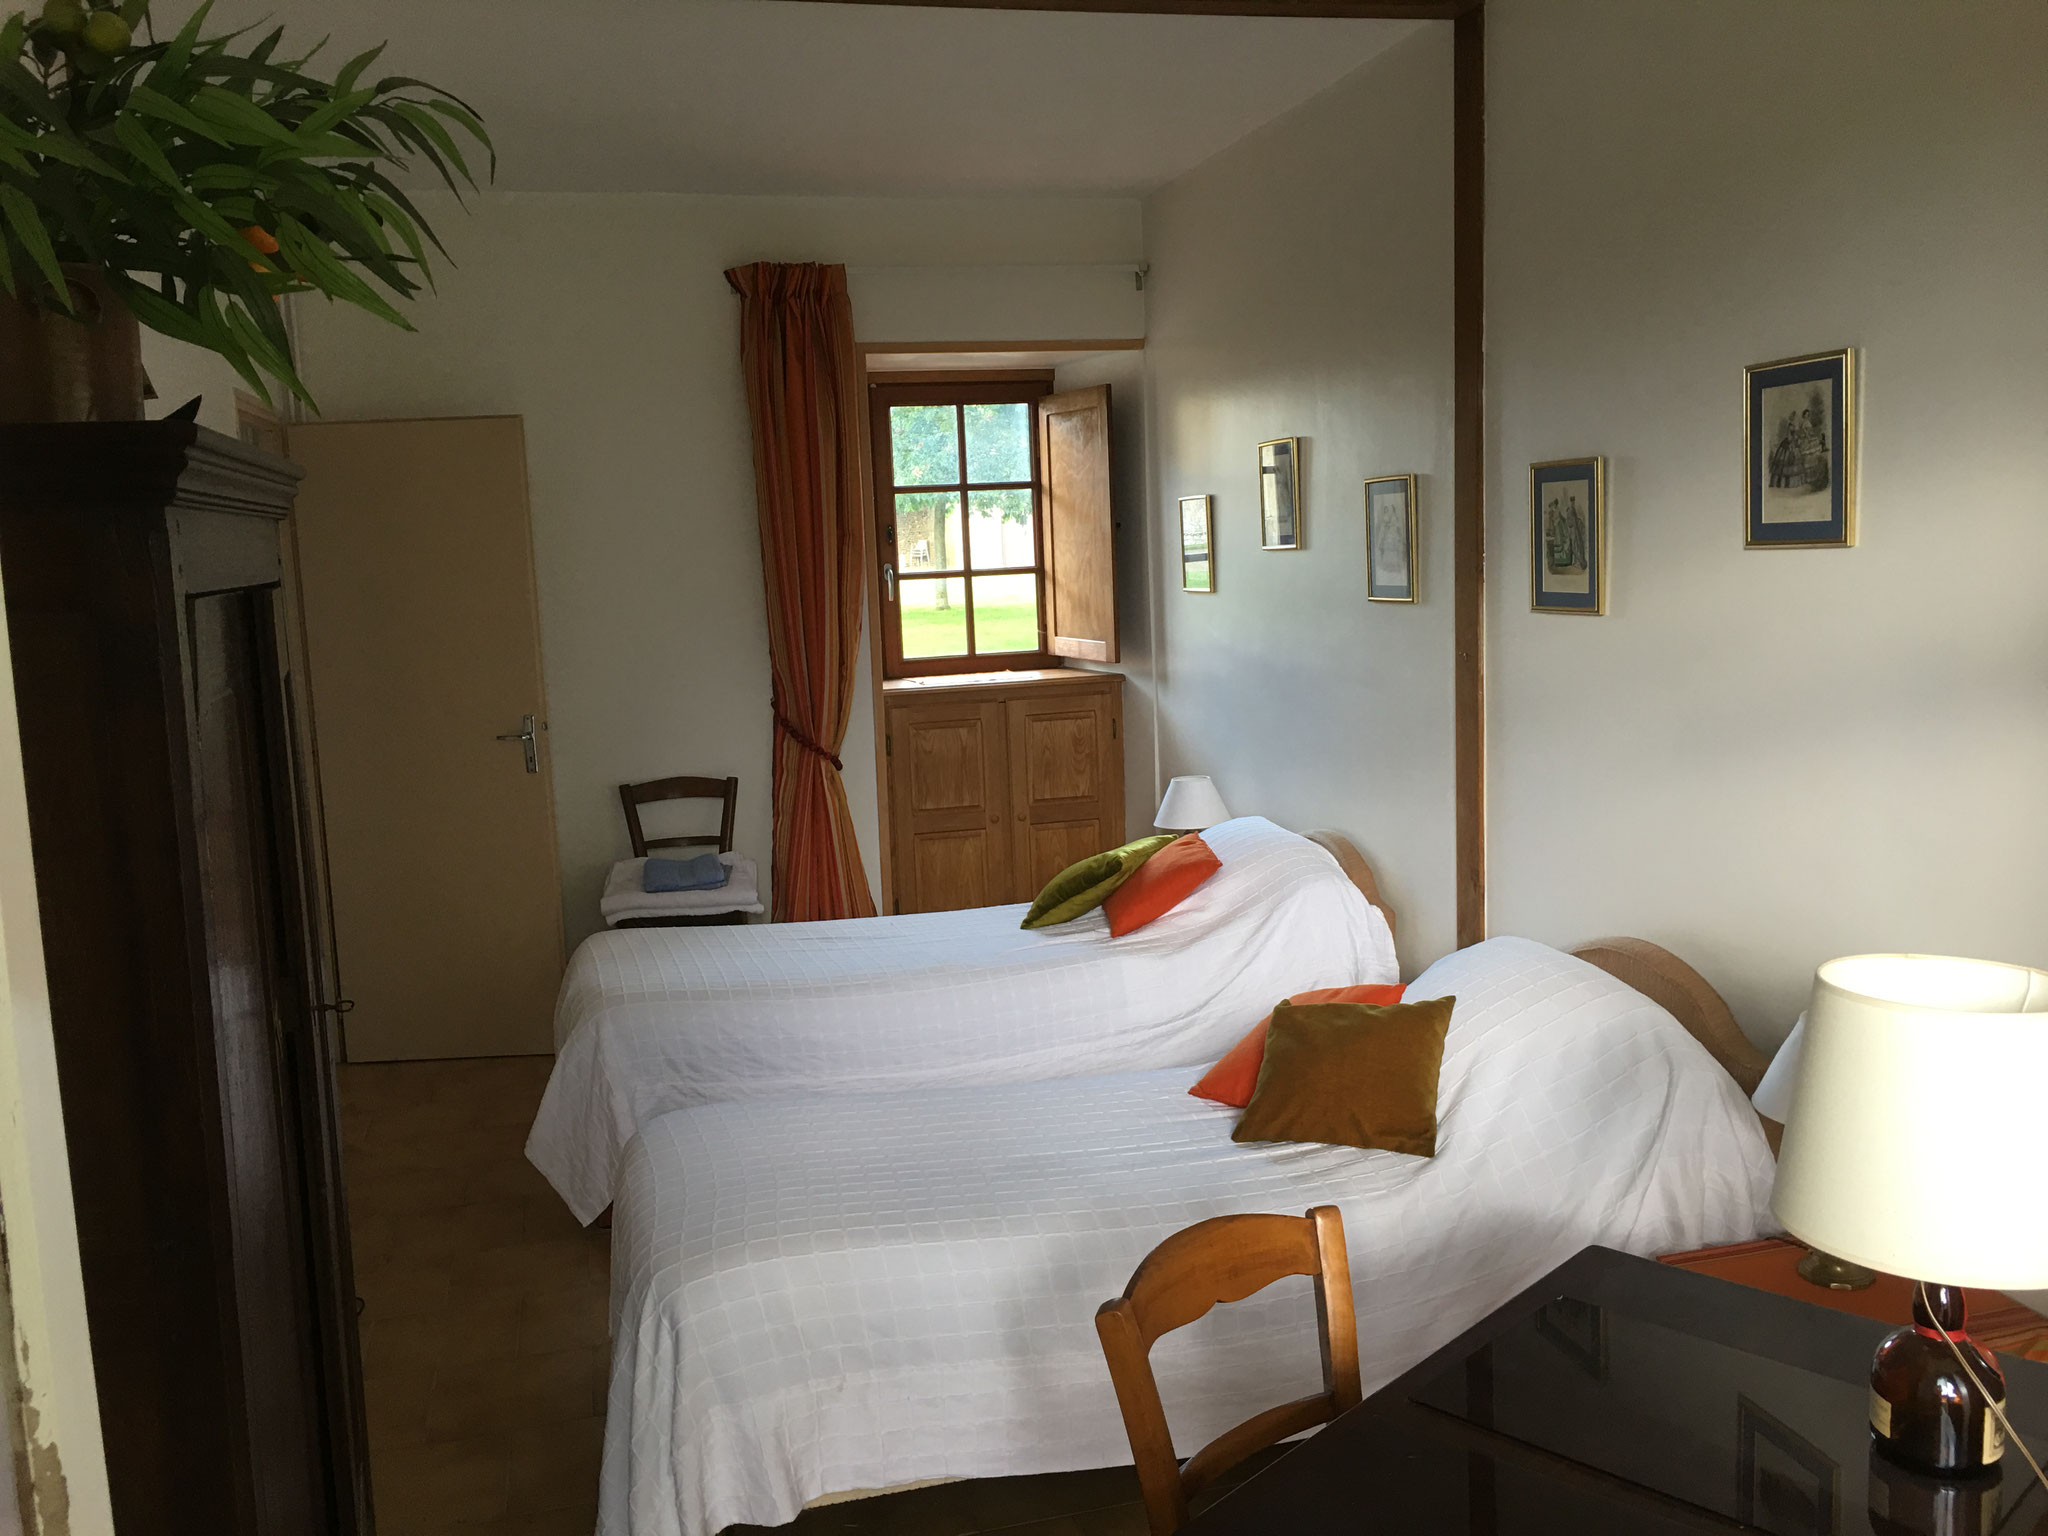 Twin bedroom on the ground floor, view towards the courtyard of the chateau